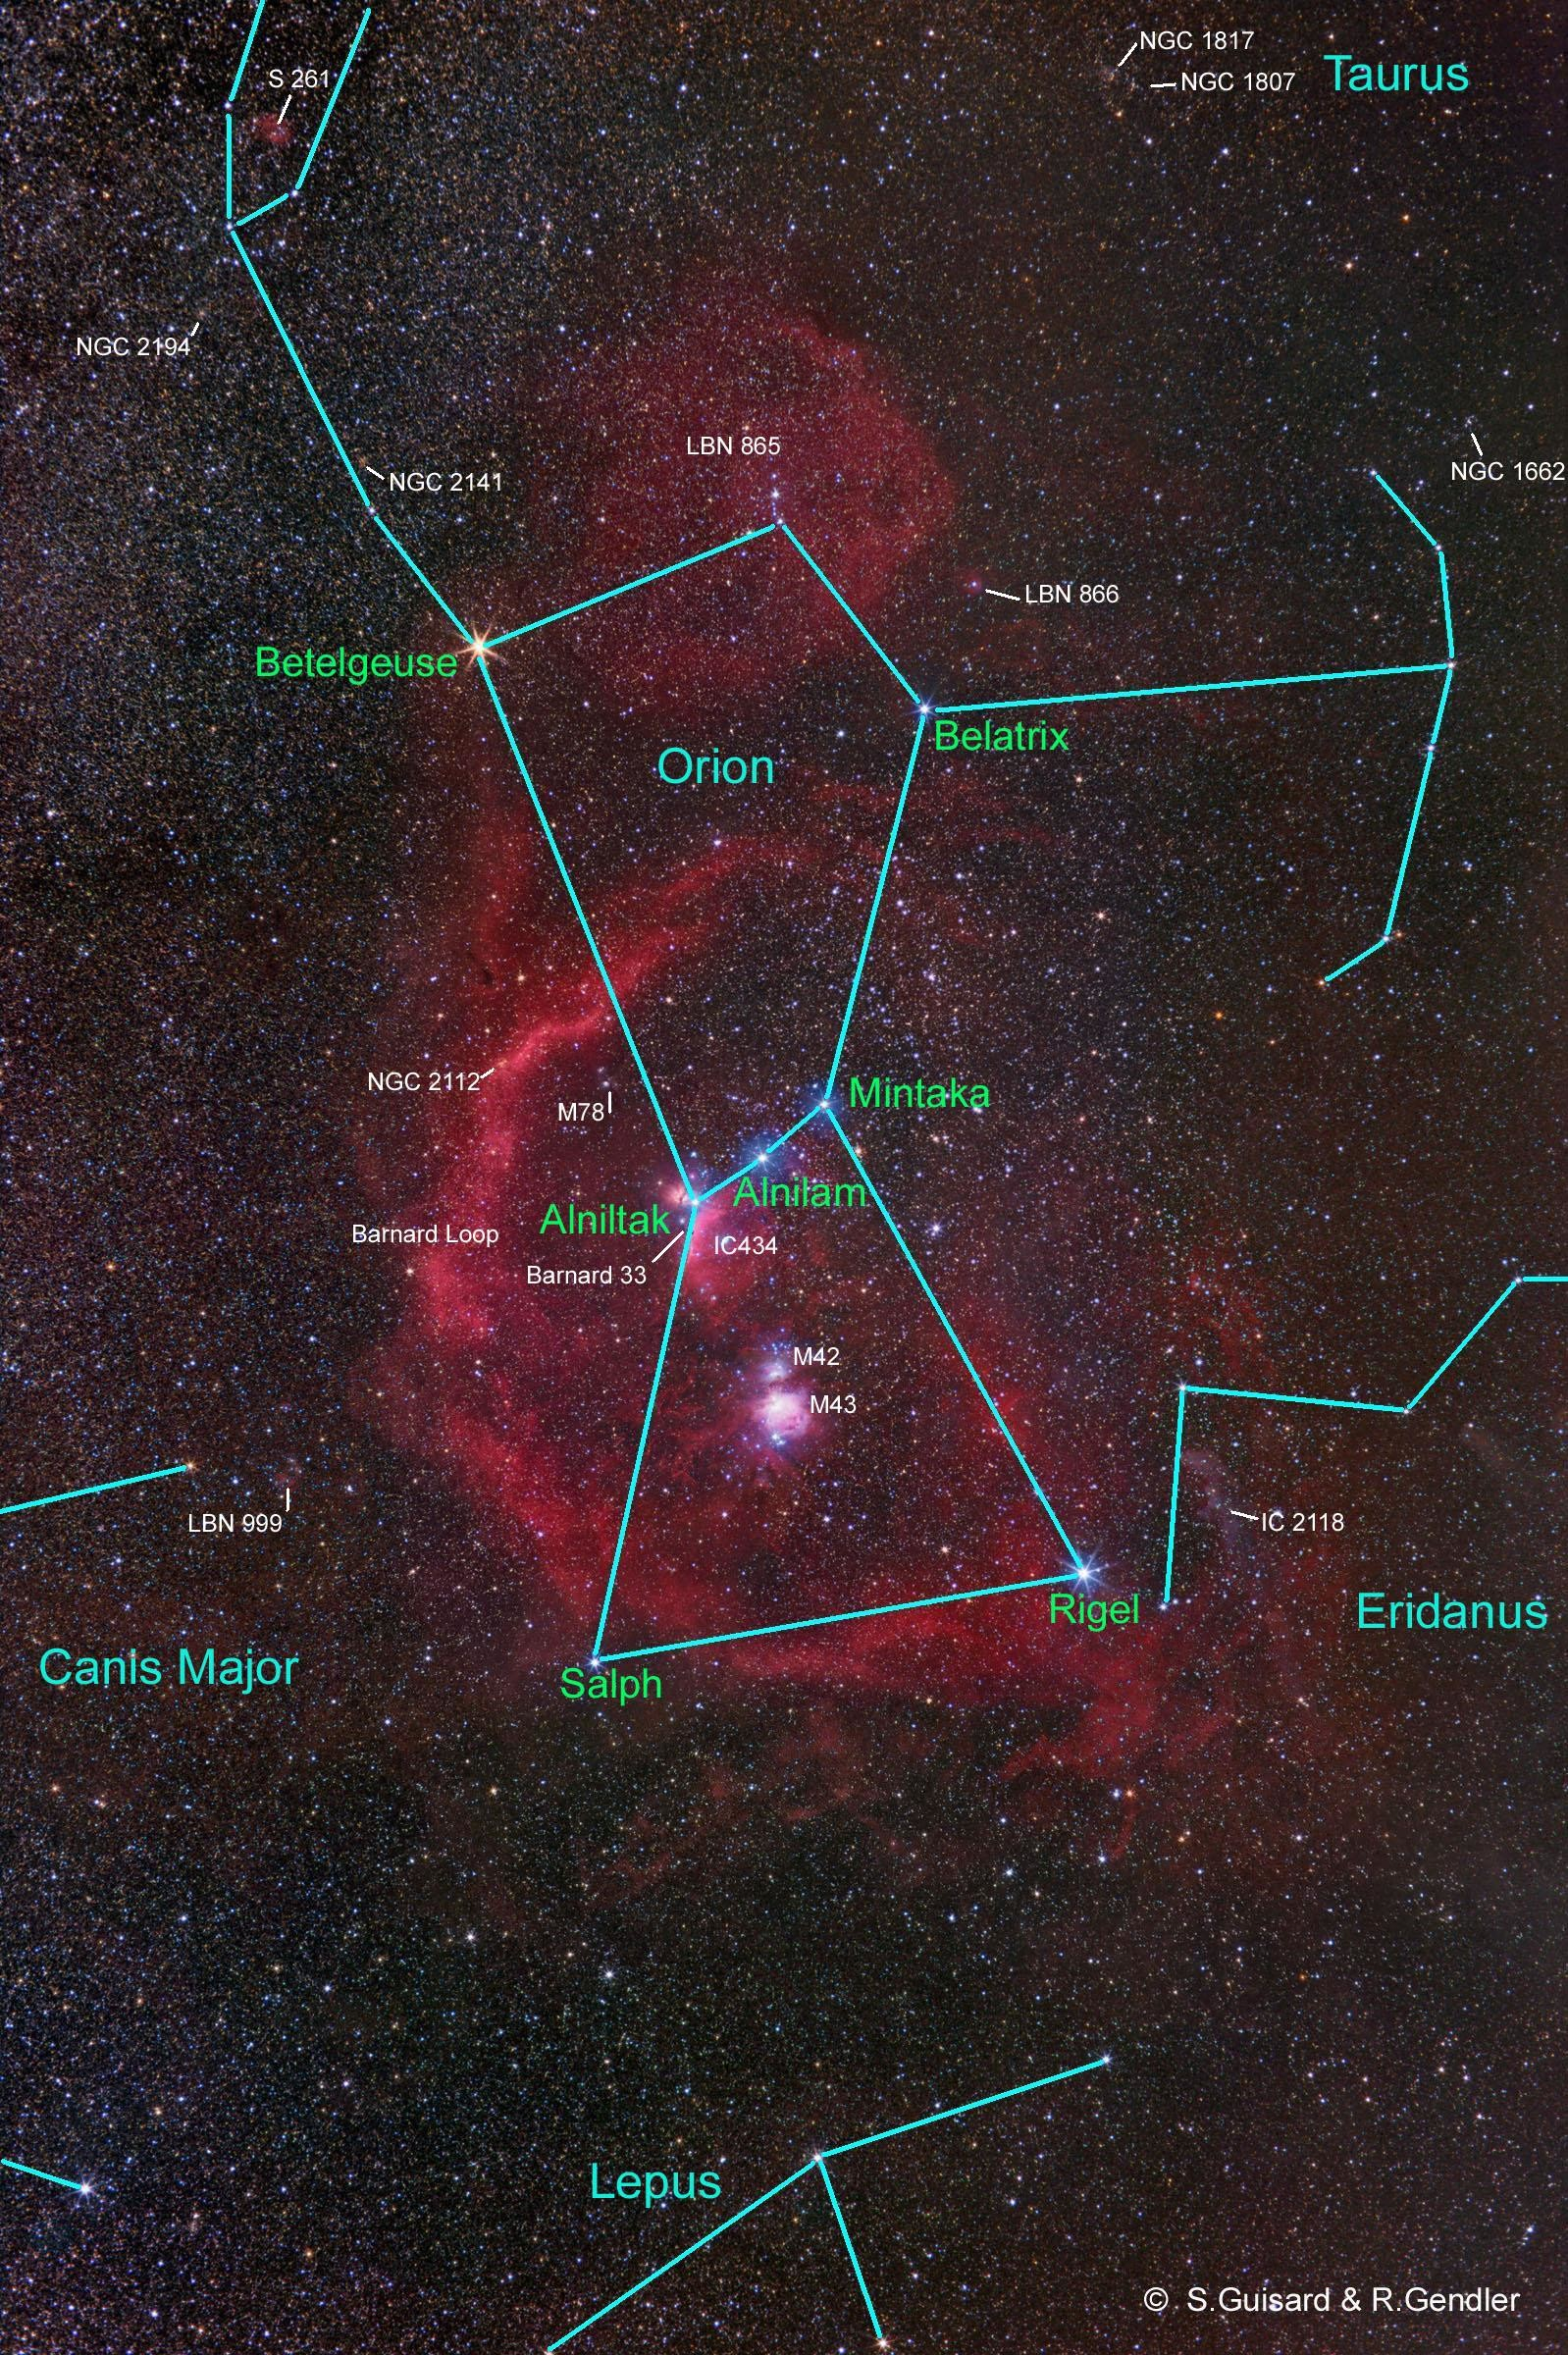 Based on my limited astronomy knowledge and a quick google search for a …